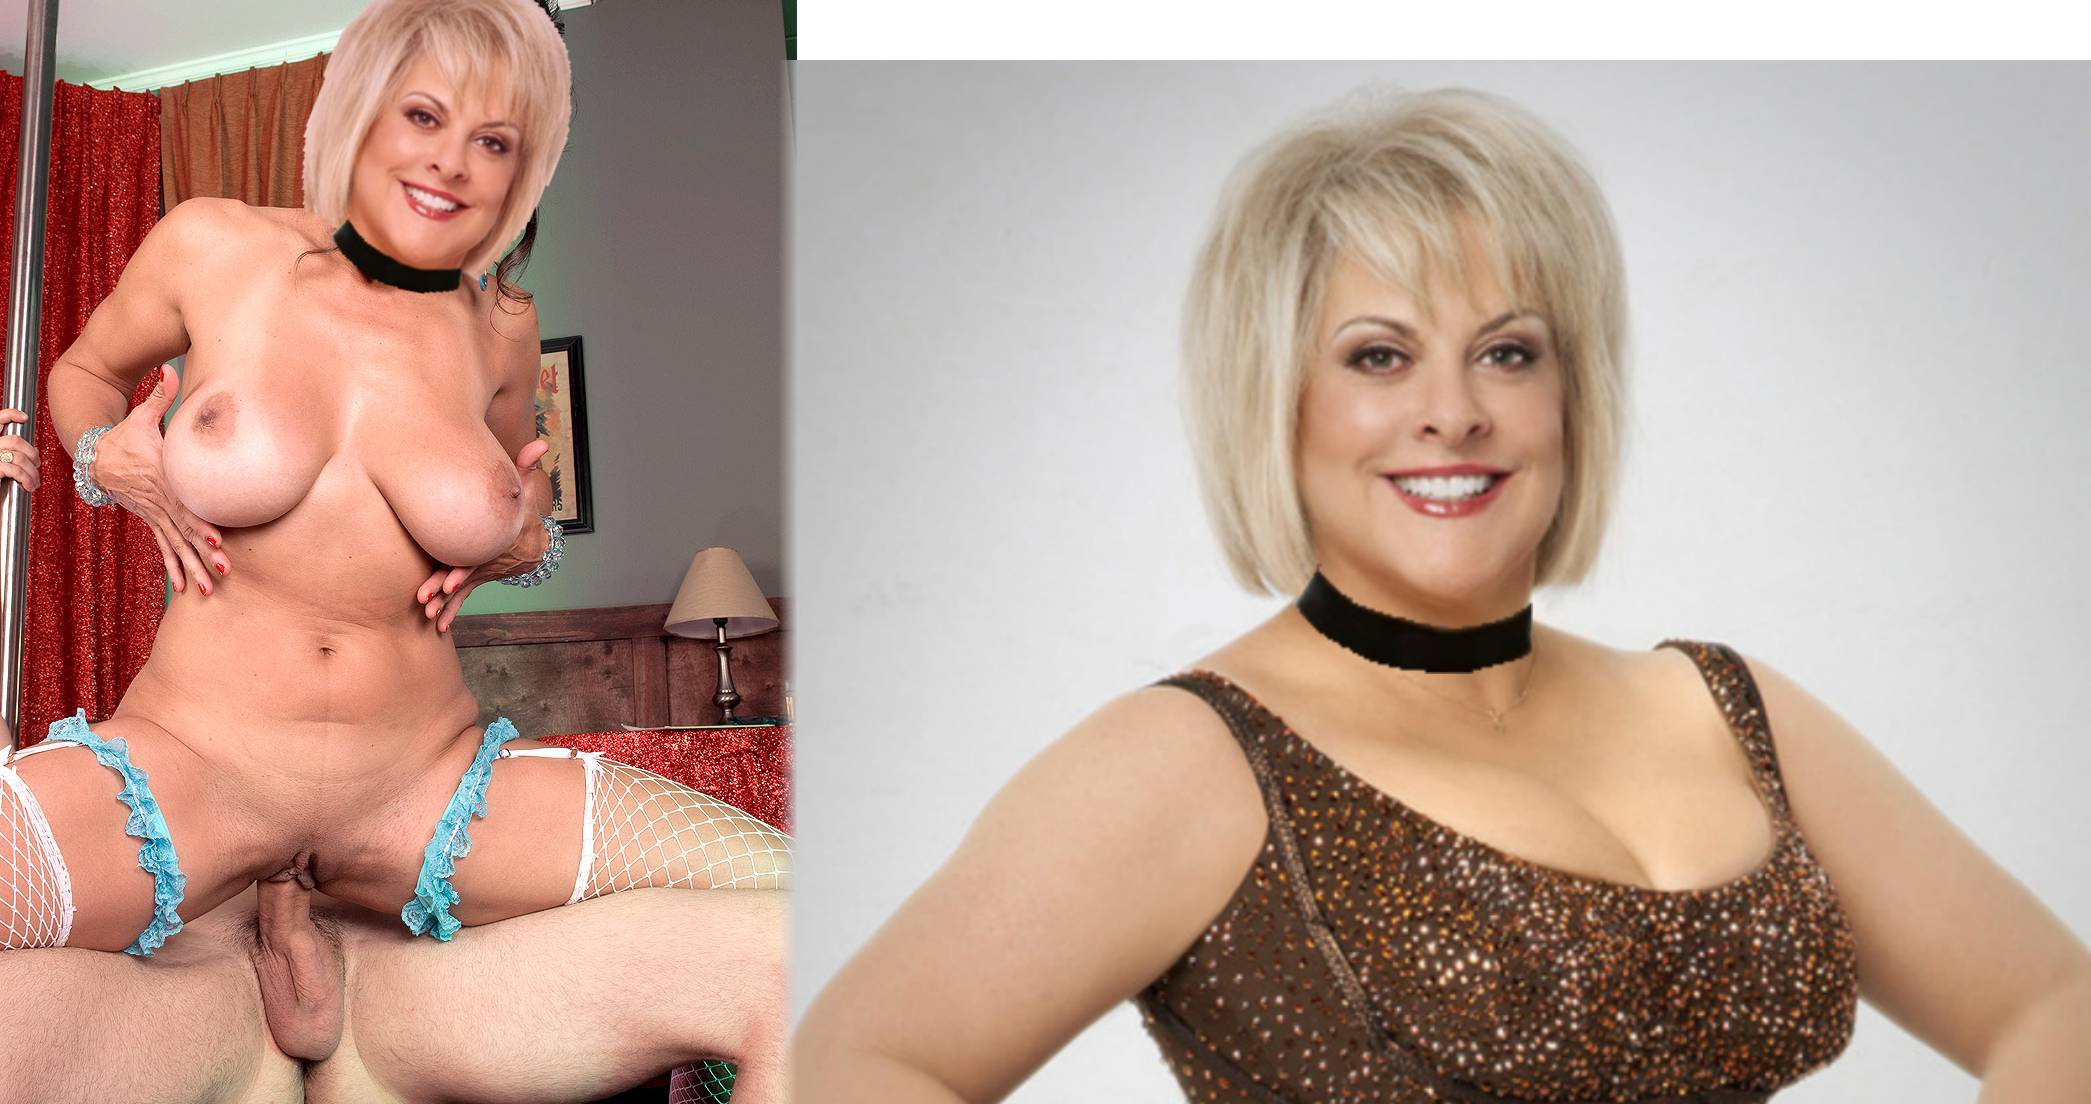 Nancy Grace Nude Fakes